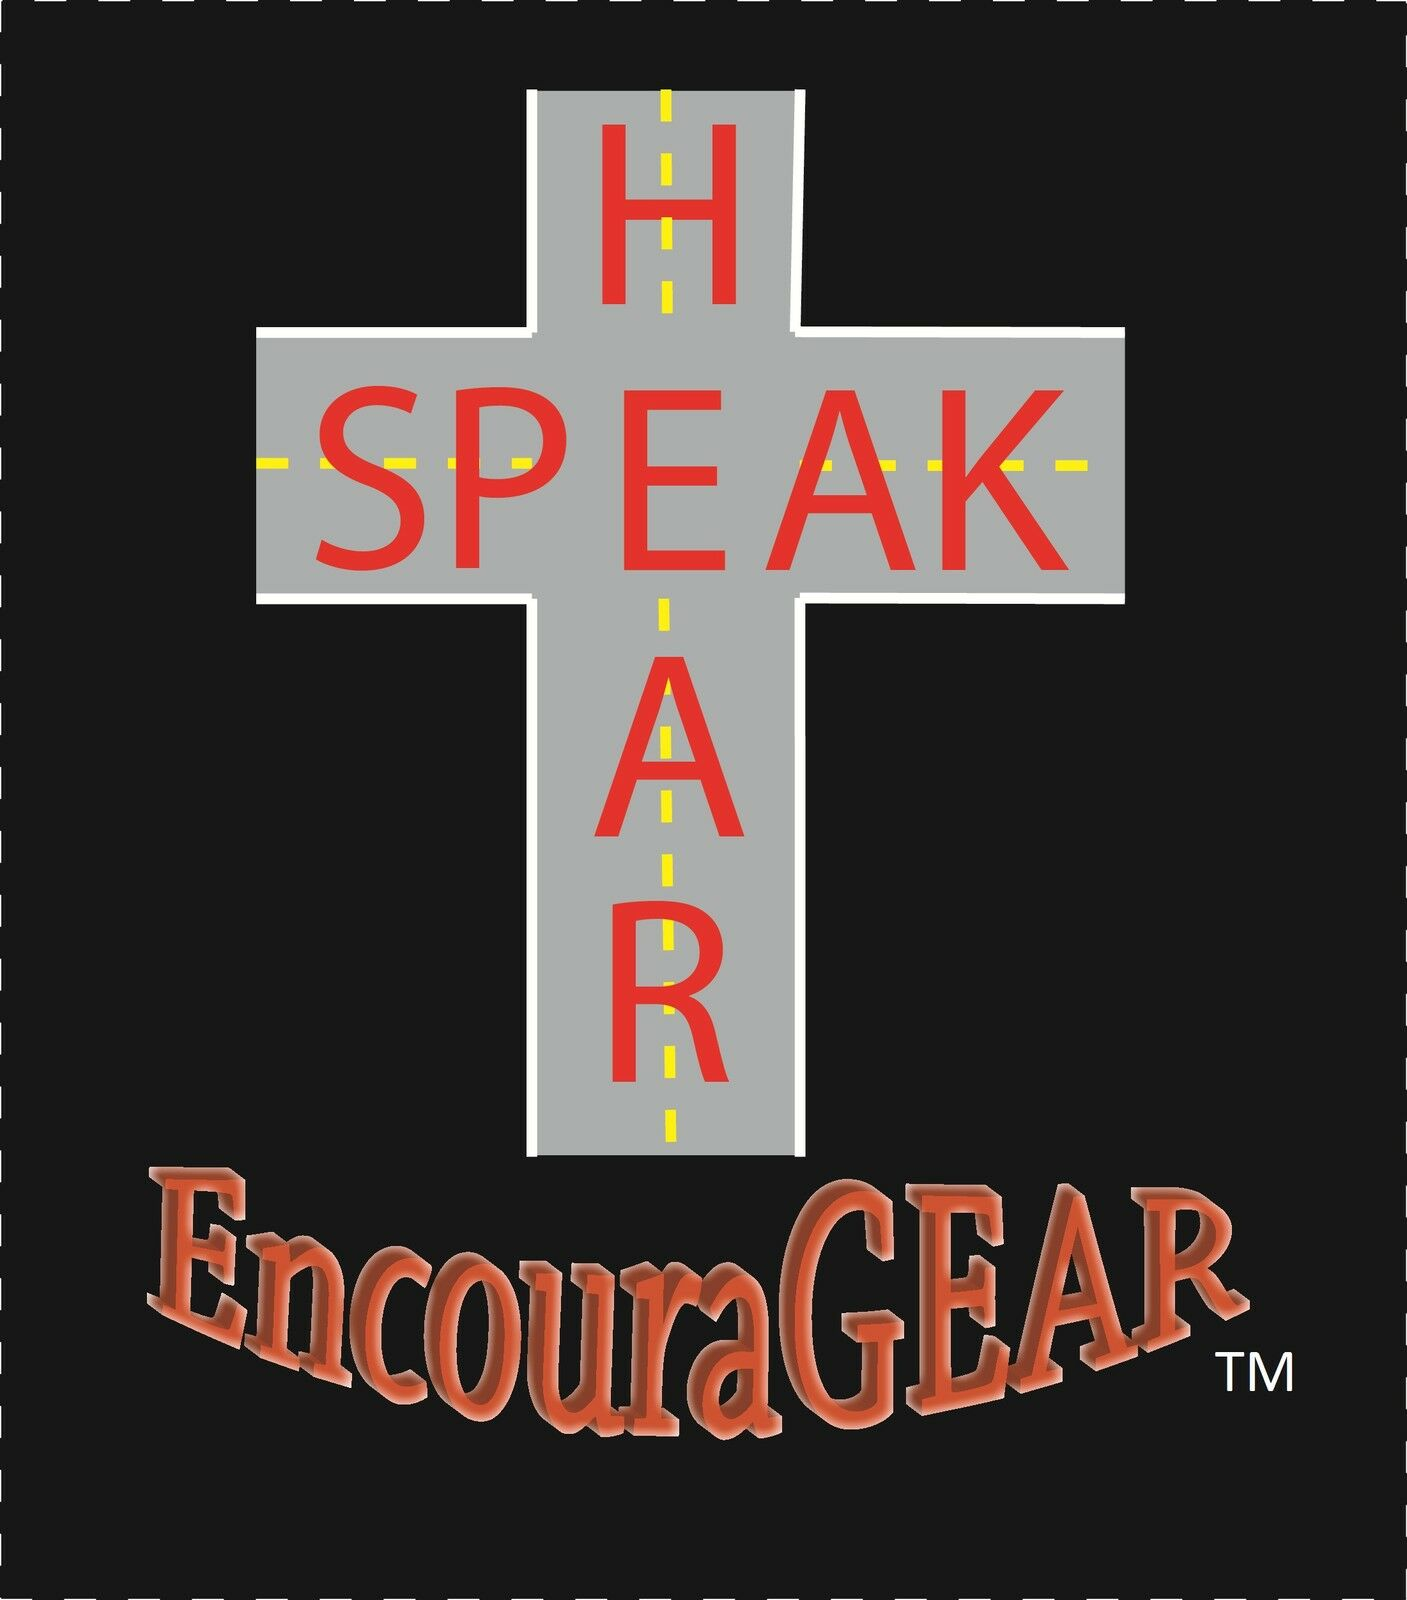 Encouragear LLC